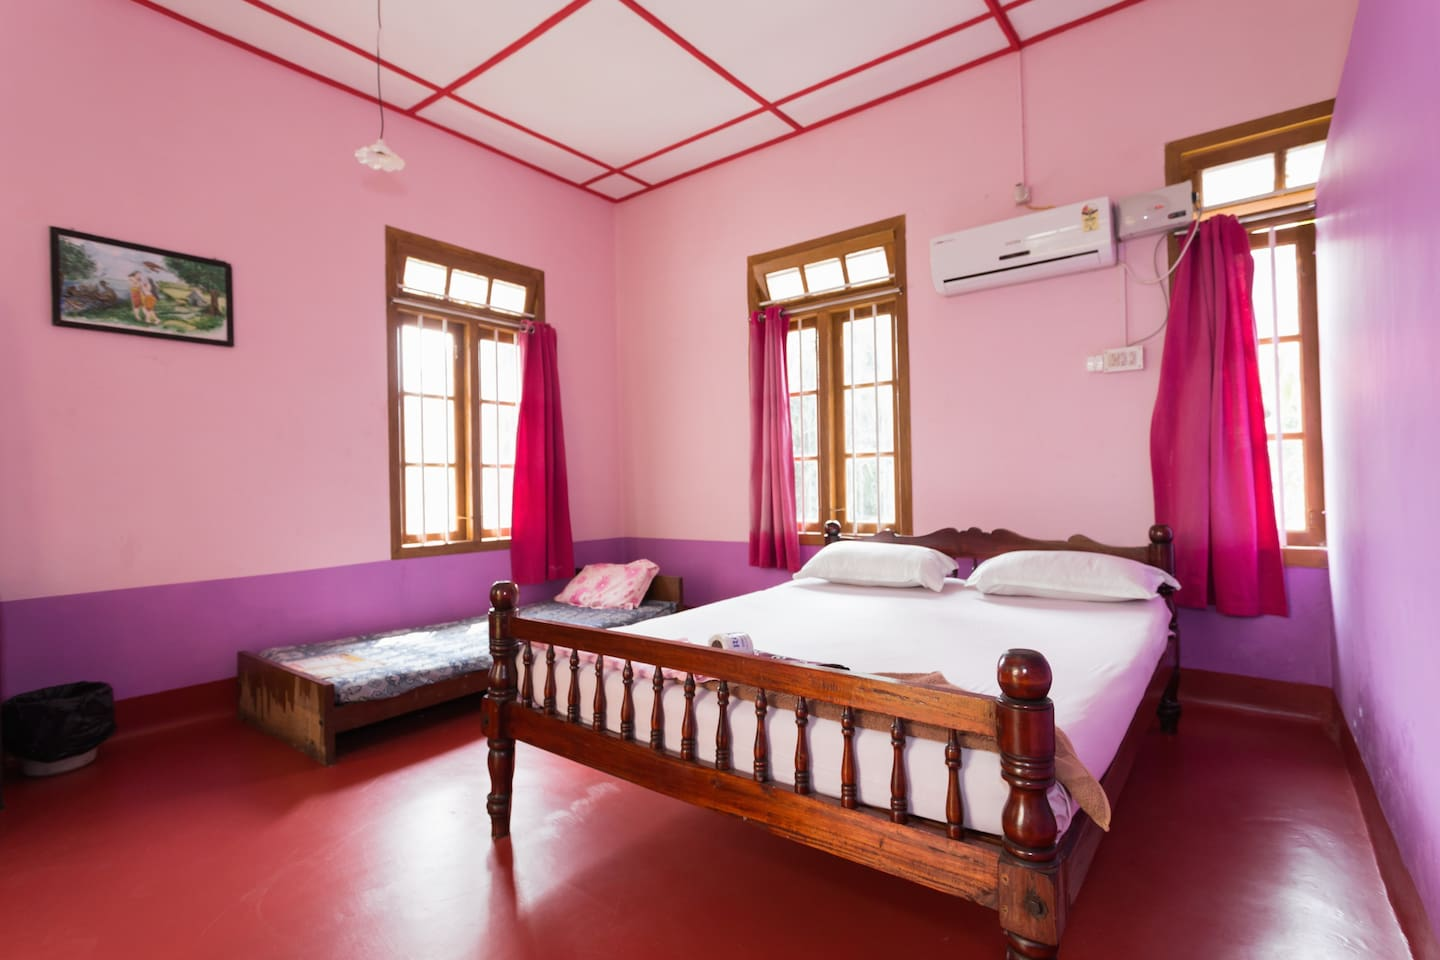 Let the pinks and the violets and the super comfy mattress @ Johnson's put you in the mood for 'Romance'. Super mod con shower, bathtubs in the balconey for the adventurous loving couple and hanging swing chair - also in the balconey for reading and relaxing.